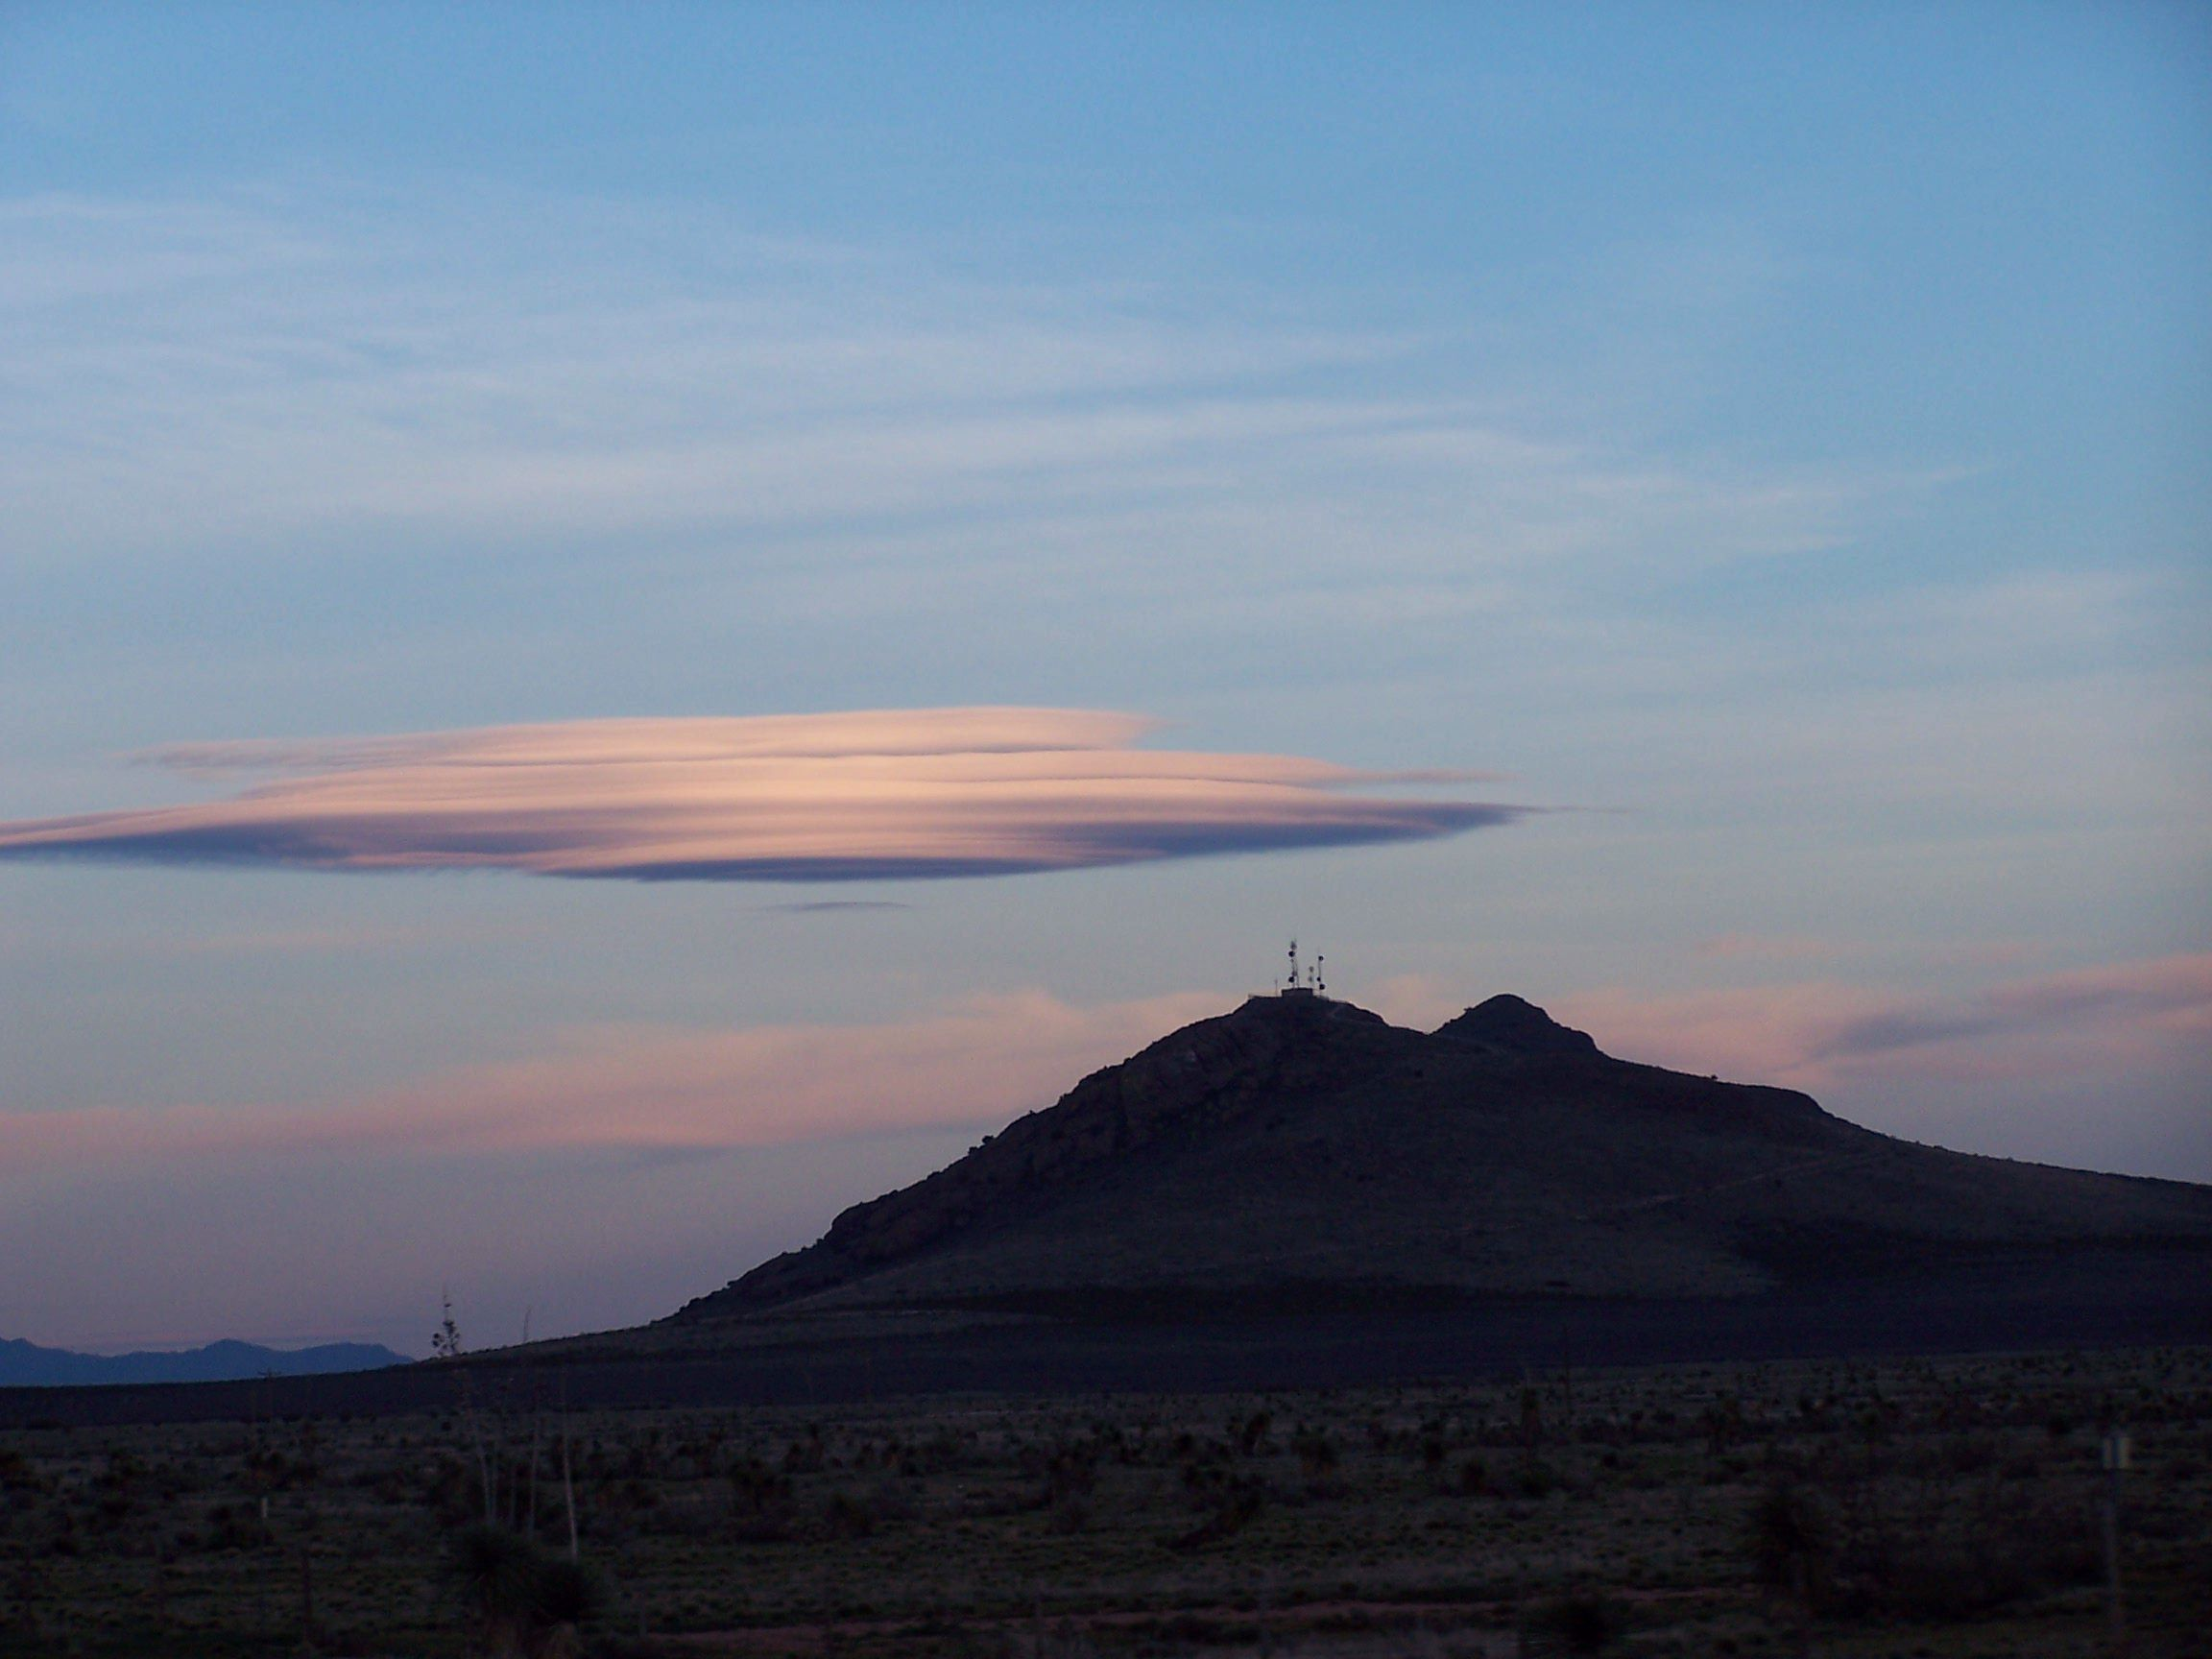 New-Mexico-Lenticular_en.wikipedia.org_foto